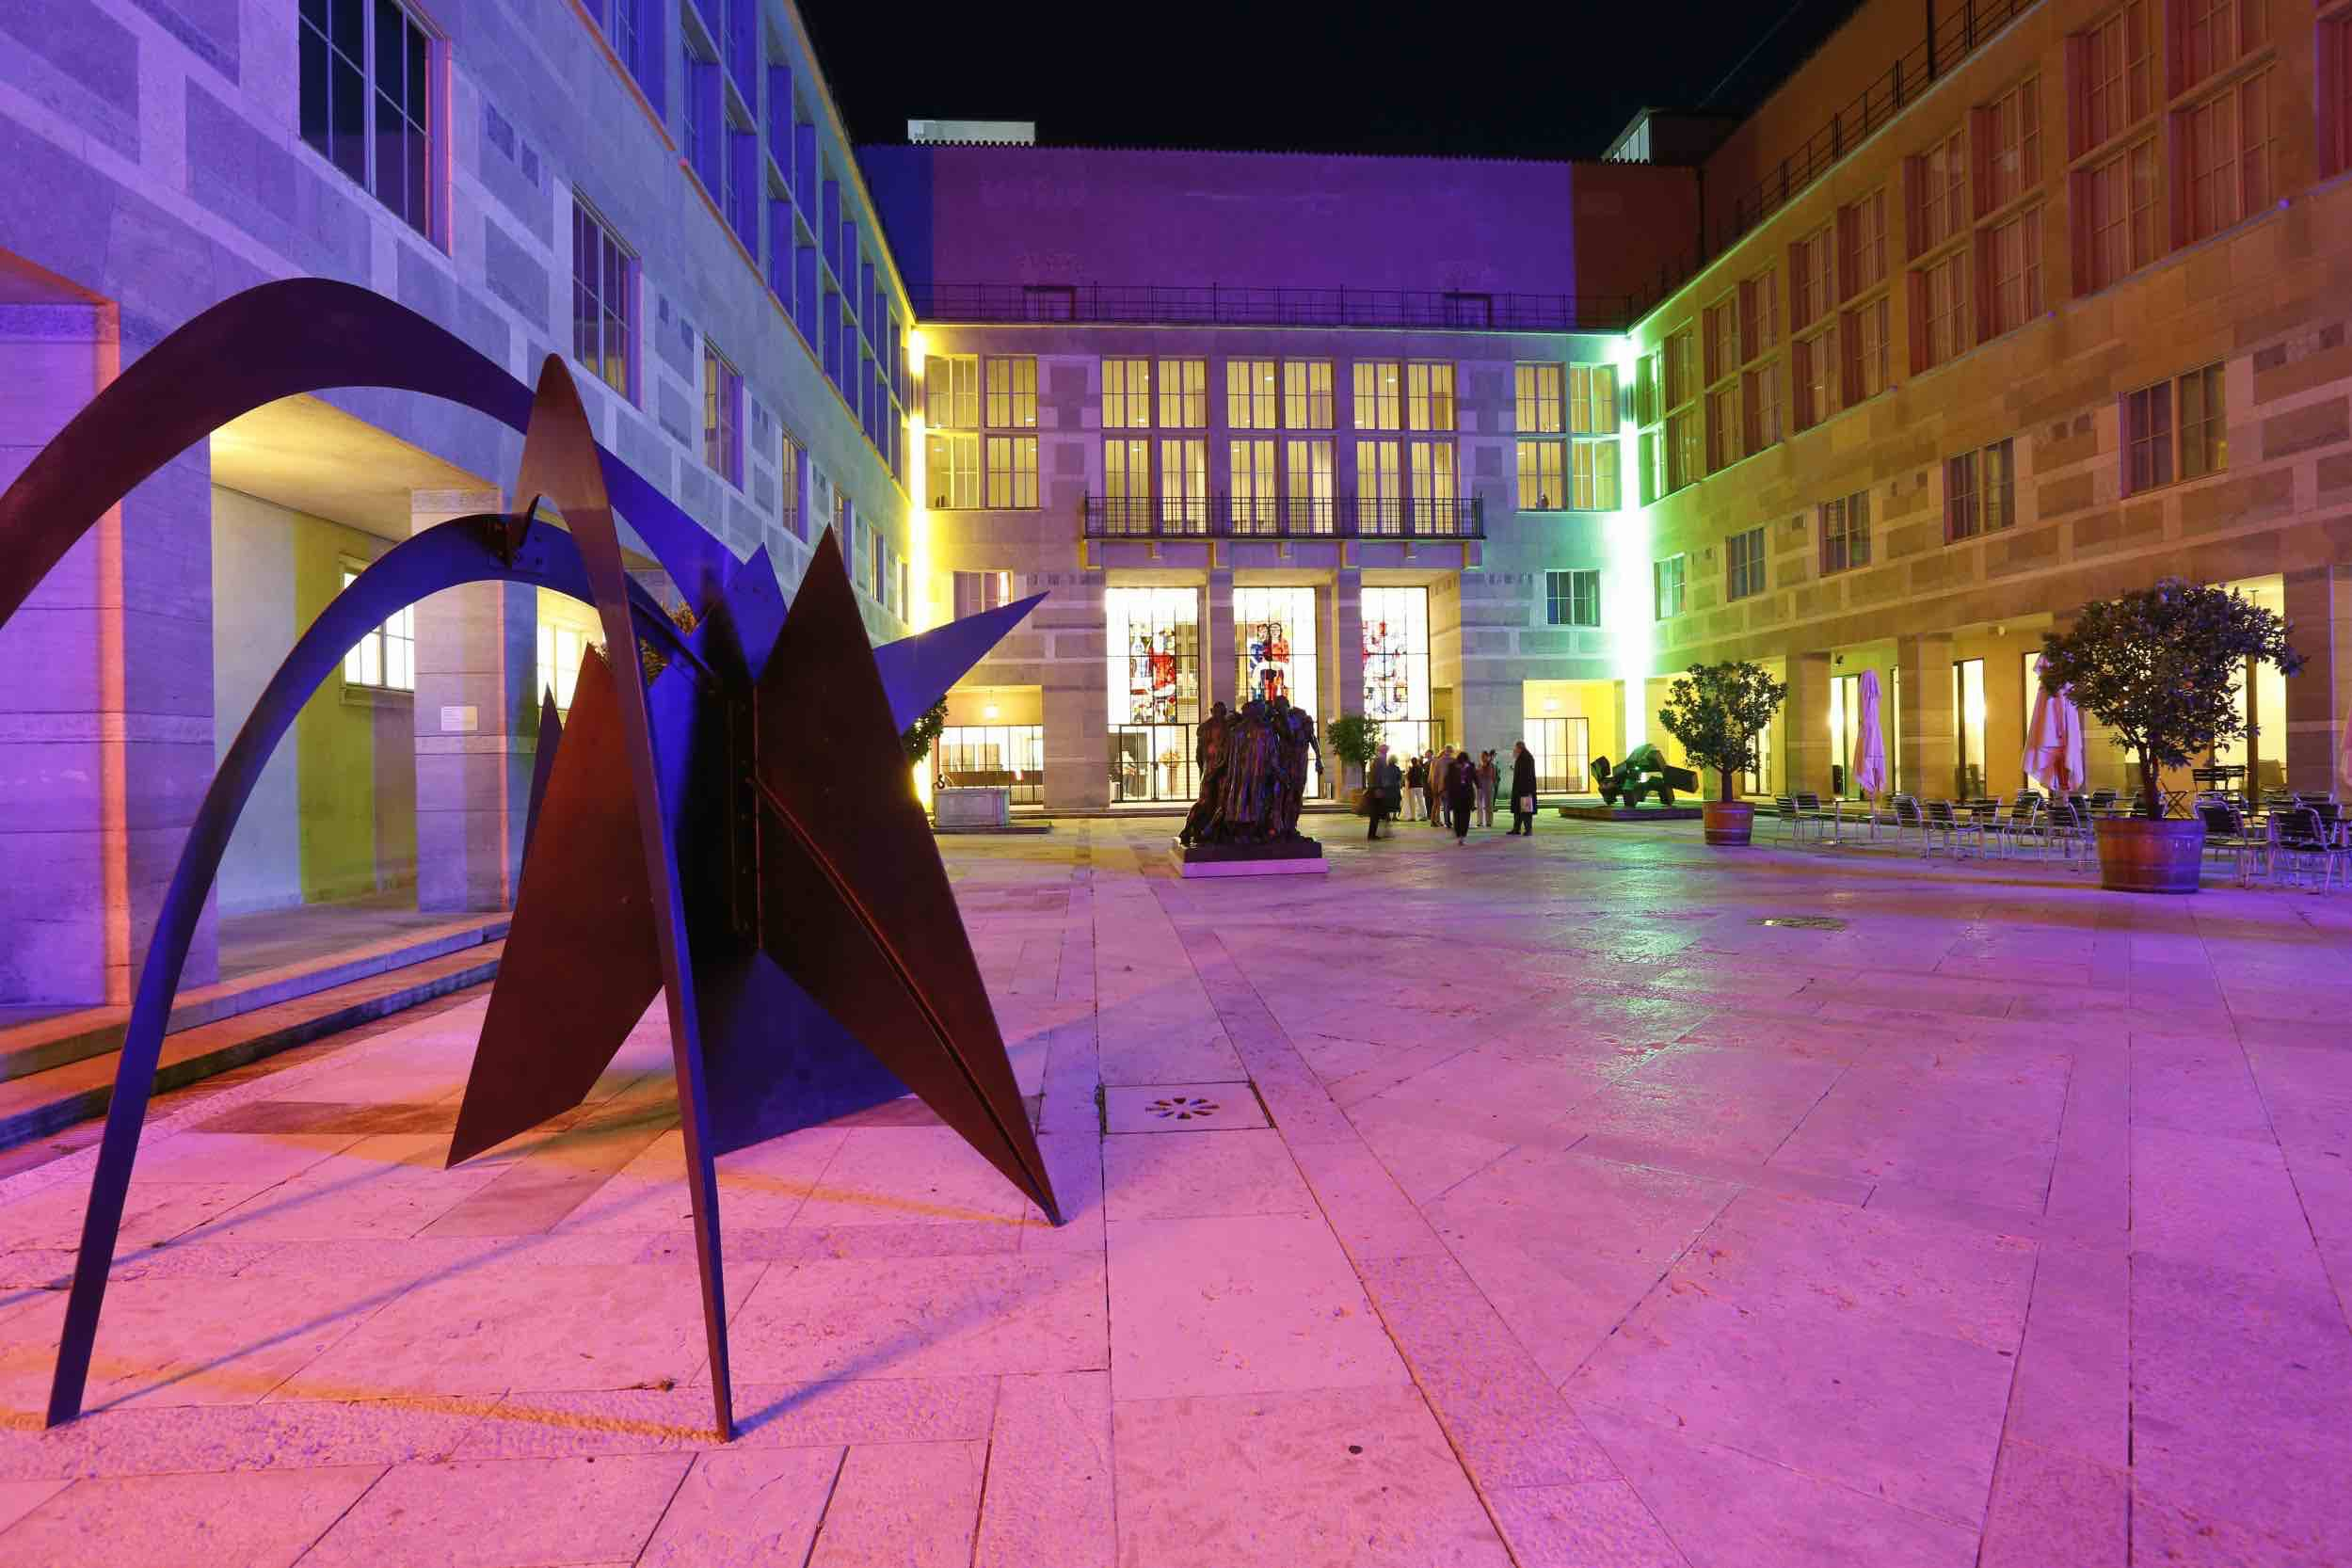 The courtyard at the Kunstmuseum Basel.